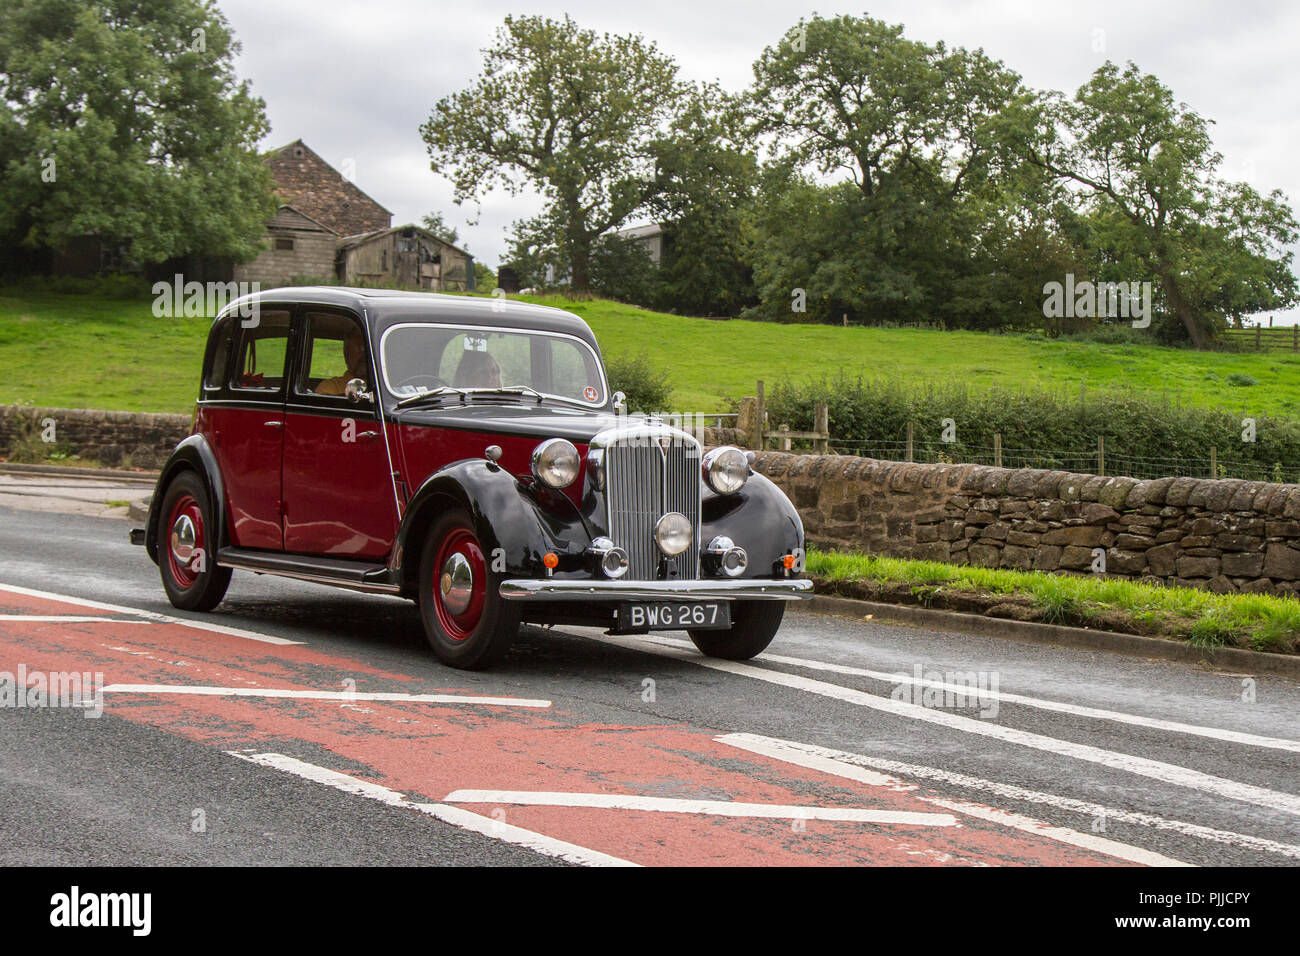 BWG267 Black Rover 75 Classic, vintage, veteran, cars of yesteryear, restored collectibles at Hoghton Tower Class Cars Rally, UK - Stock Image